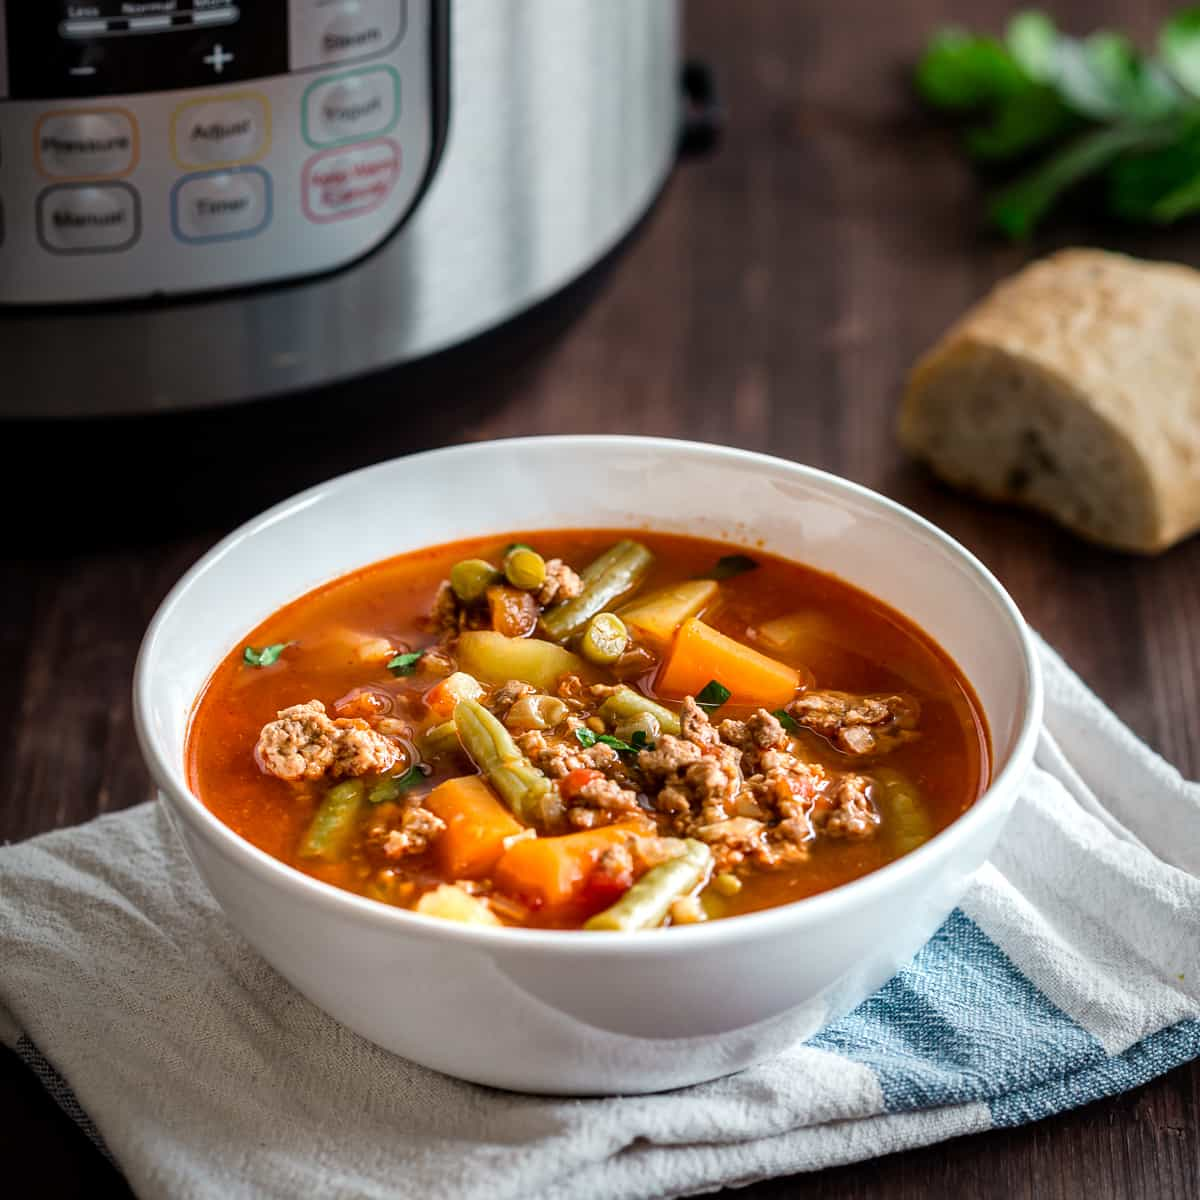 Instant Pot Hamburger Soup served in a white bowl